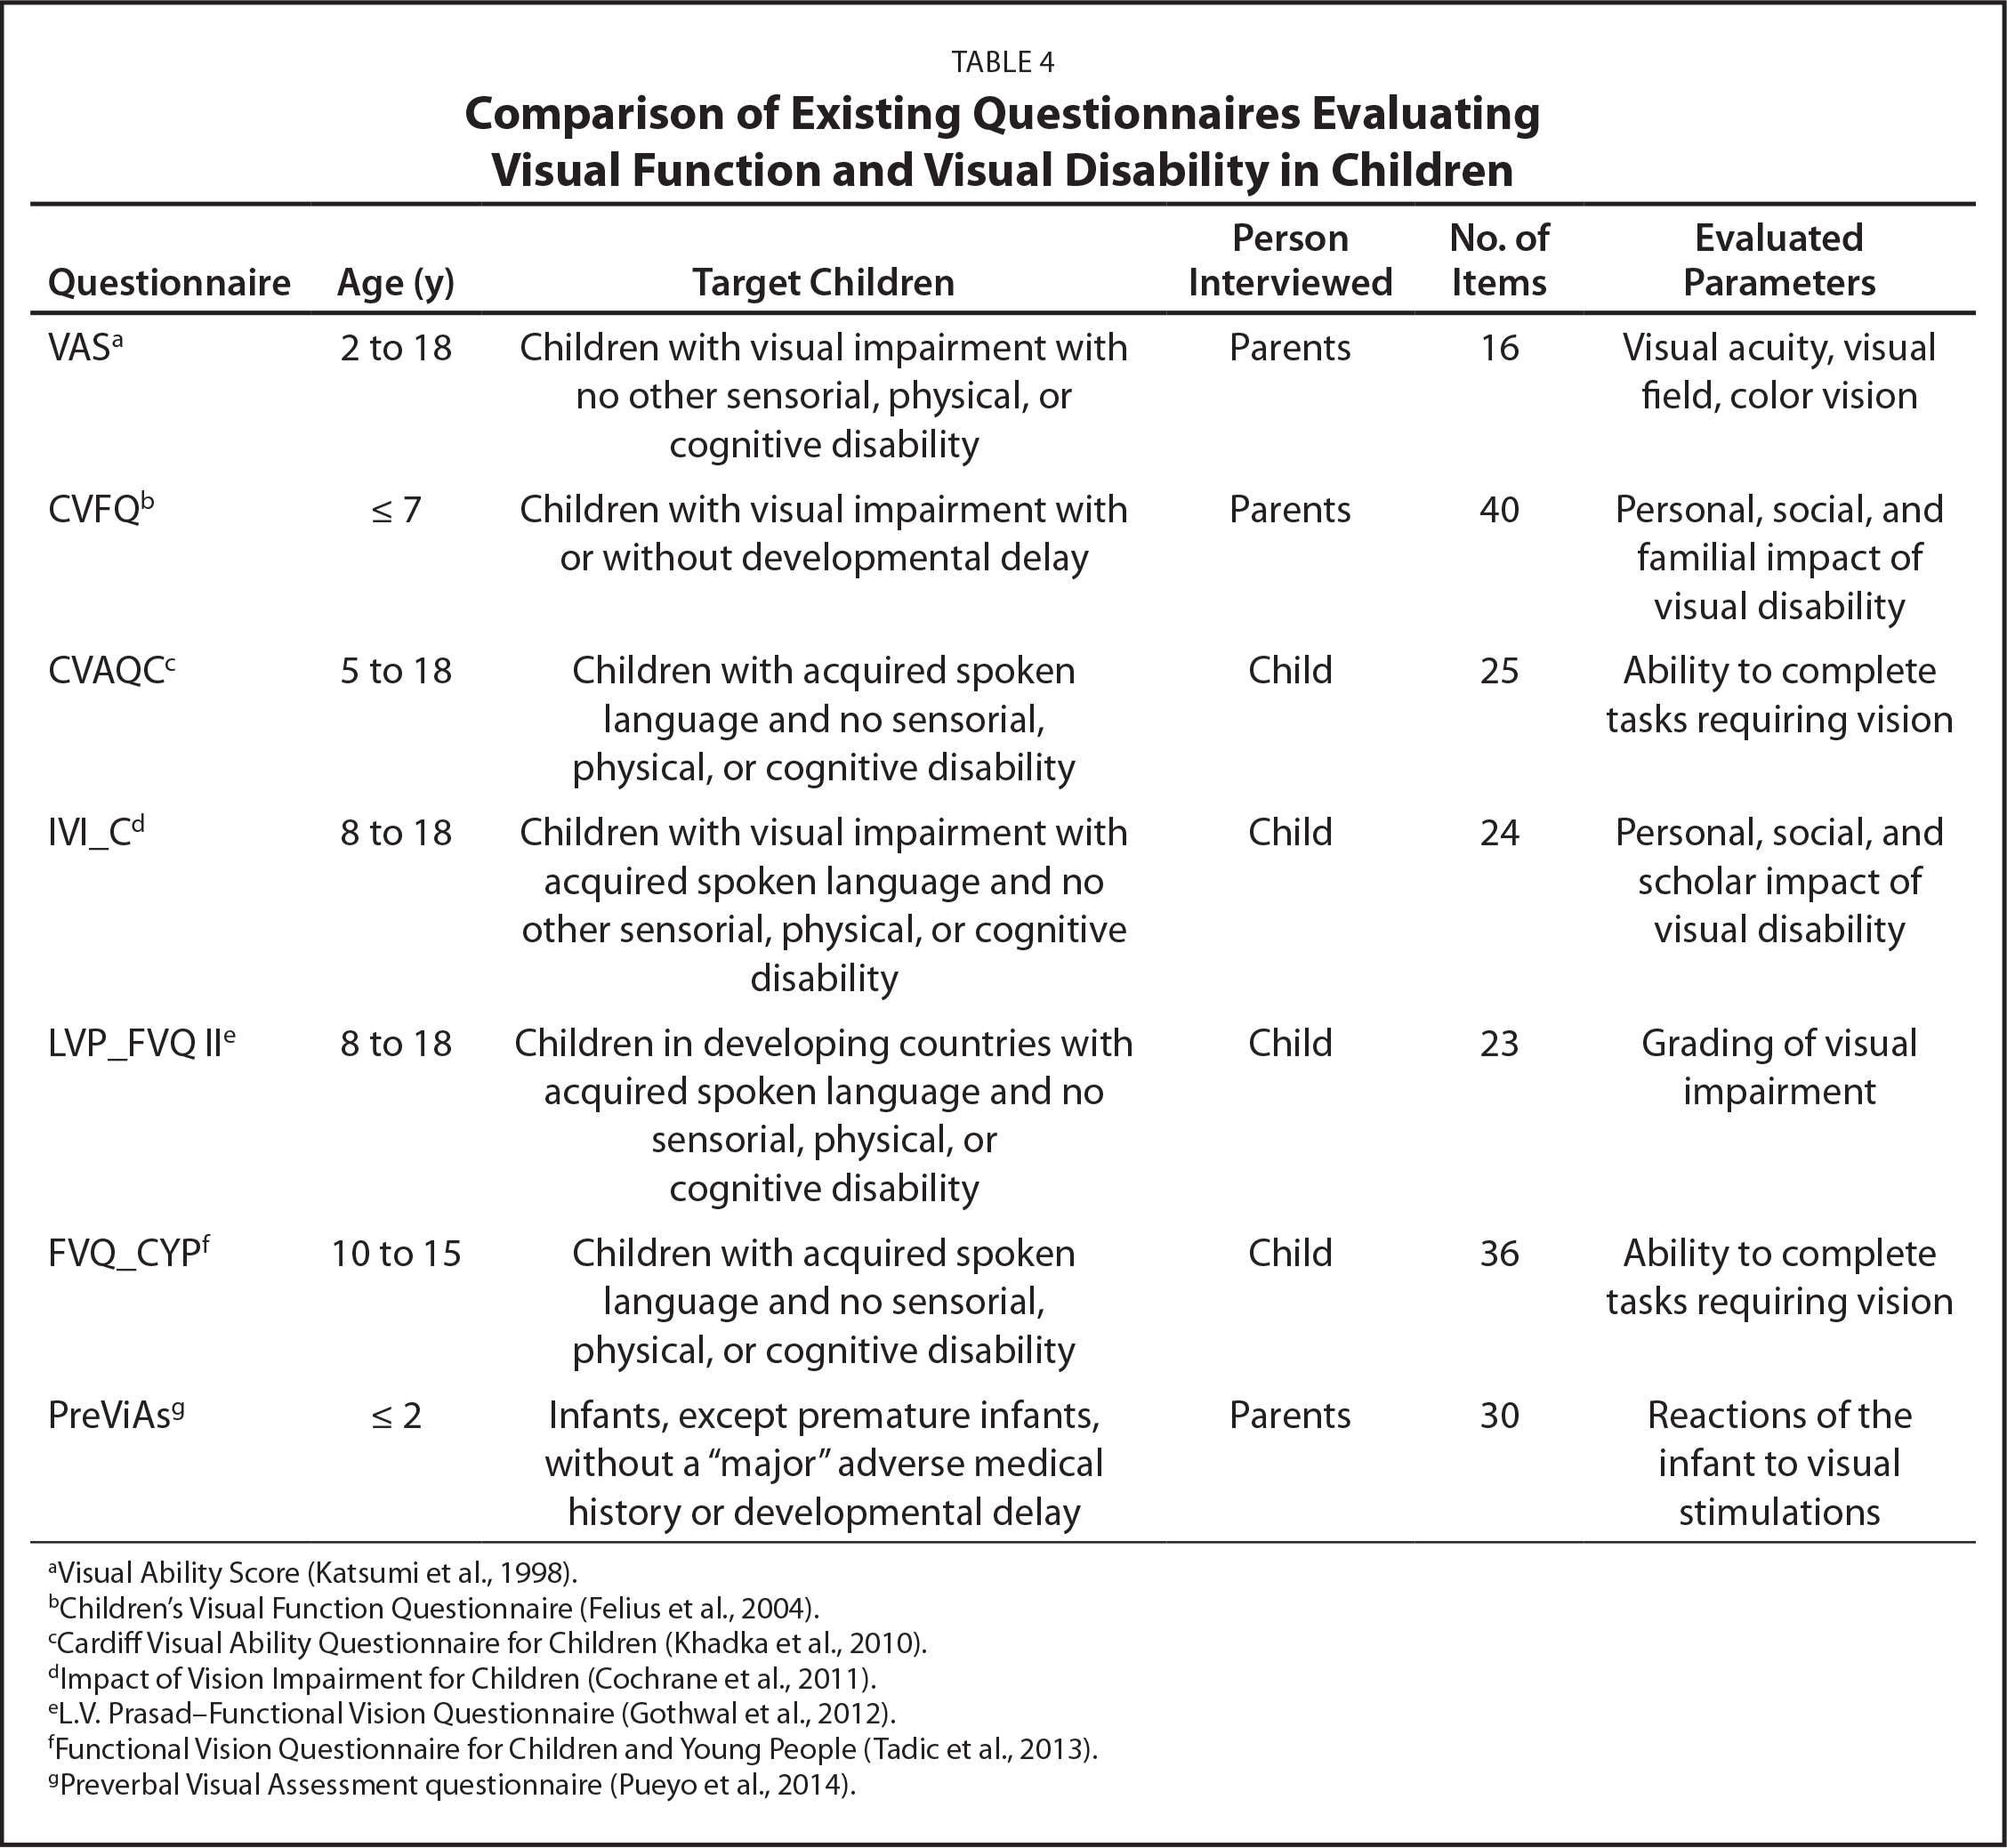 Comparison of Existing Questionnaires Evaluating Visual Function and Visual Disability in Children